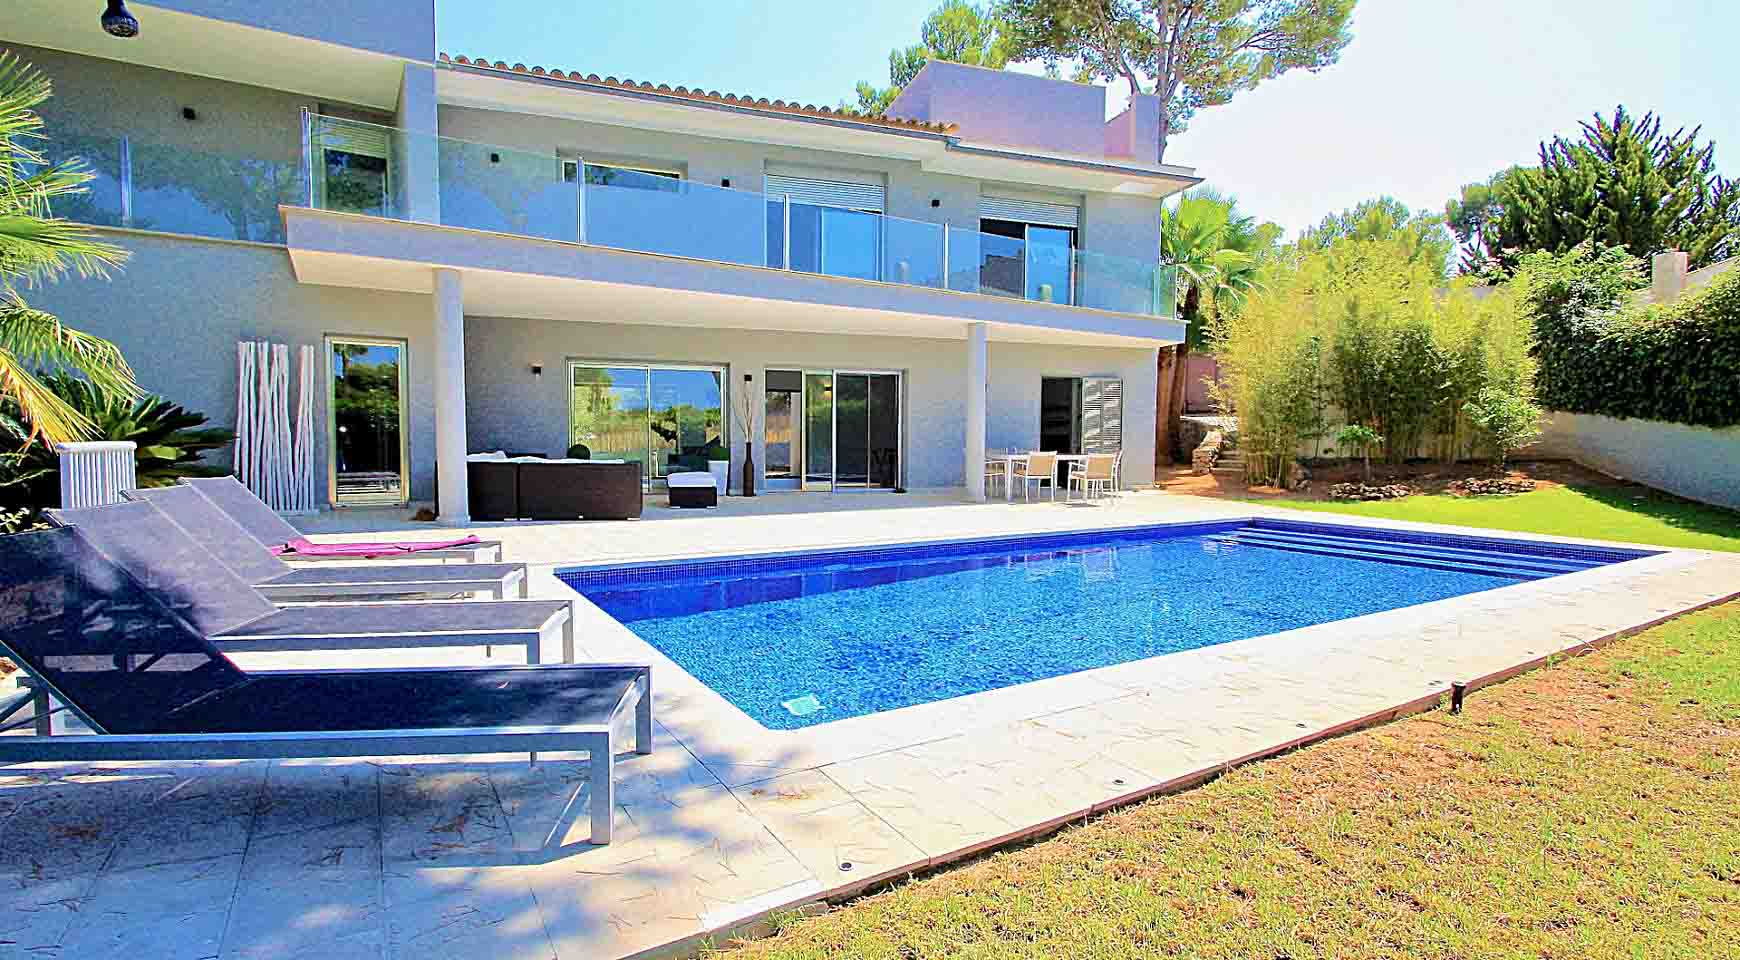 Pool Kaufen Real Spacious 5 Bedroom Villa Nova Santa Ponsa New Home Mallorca